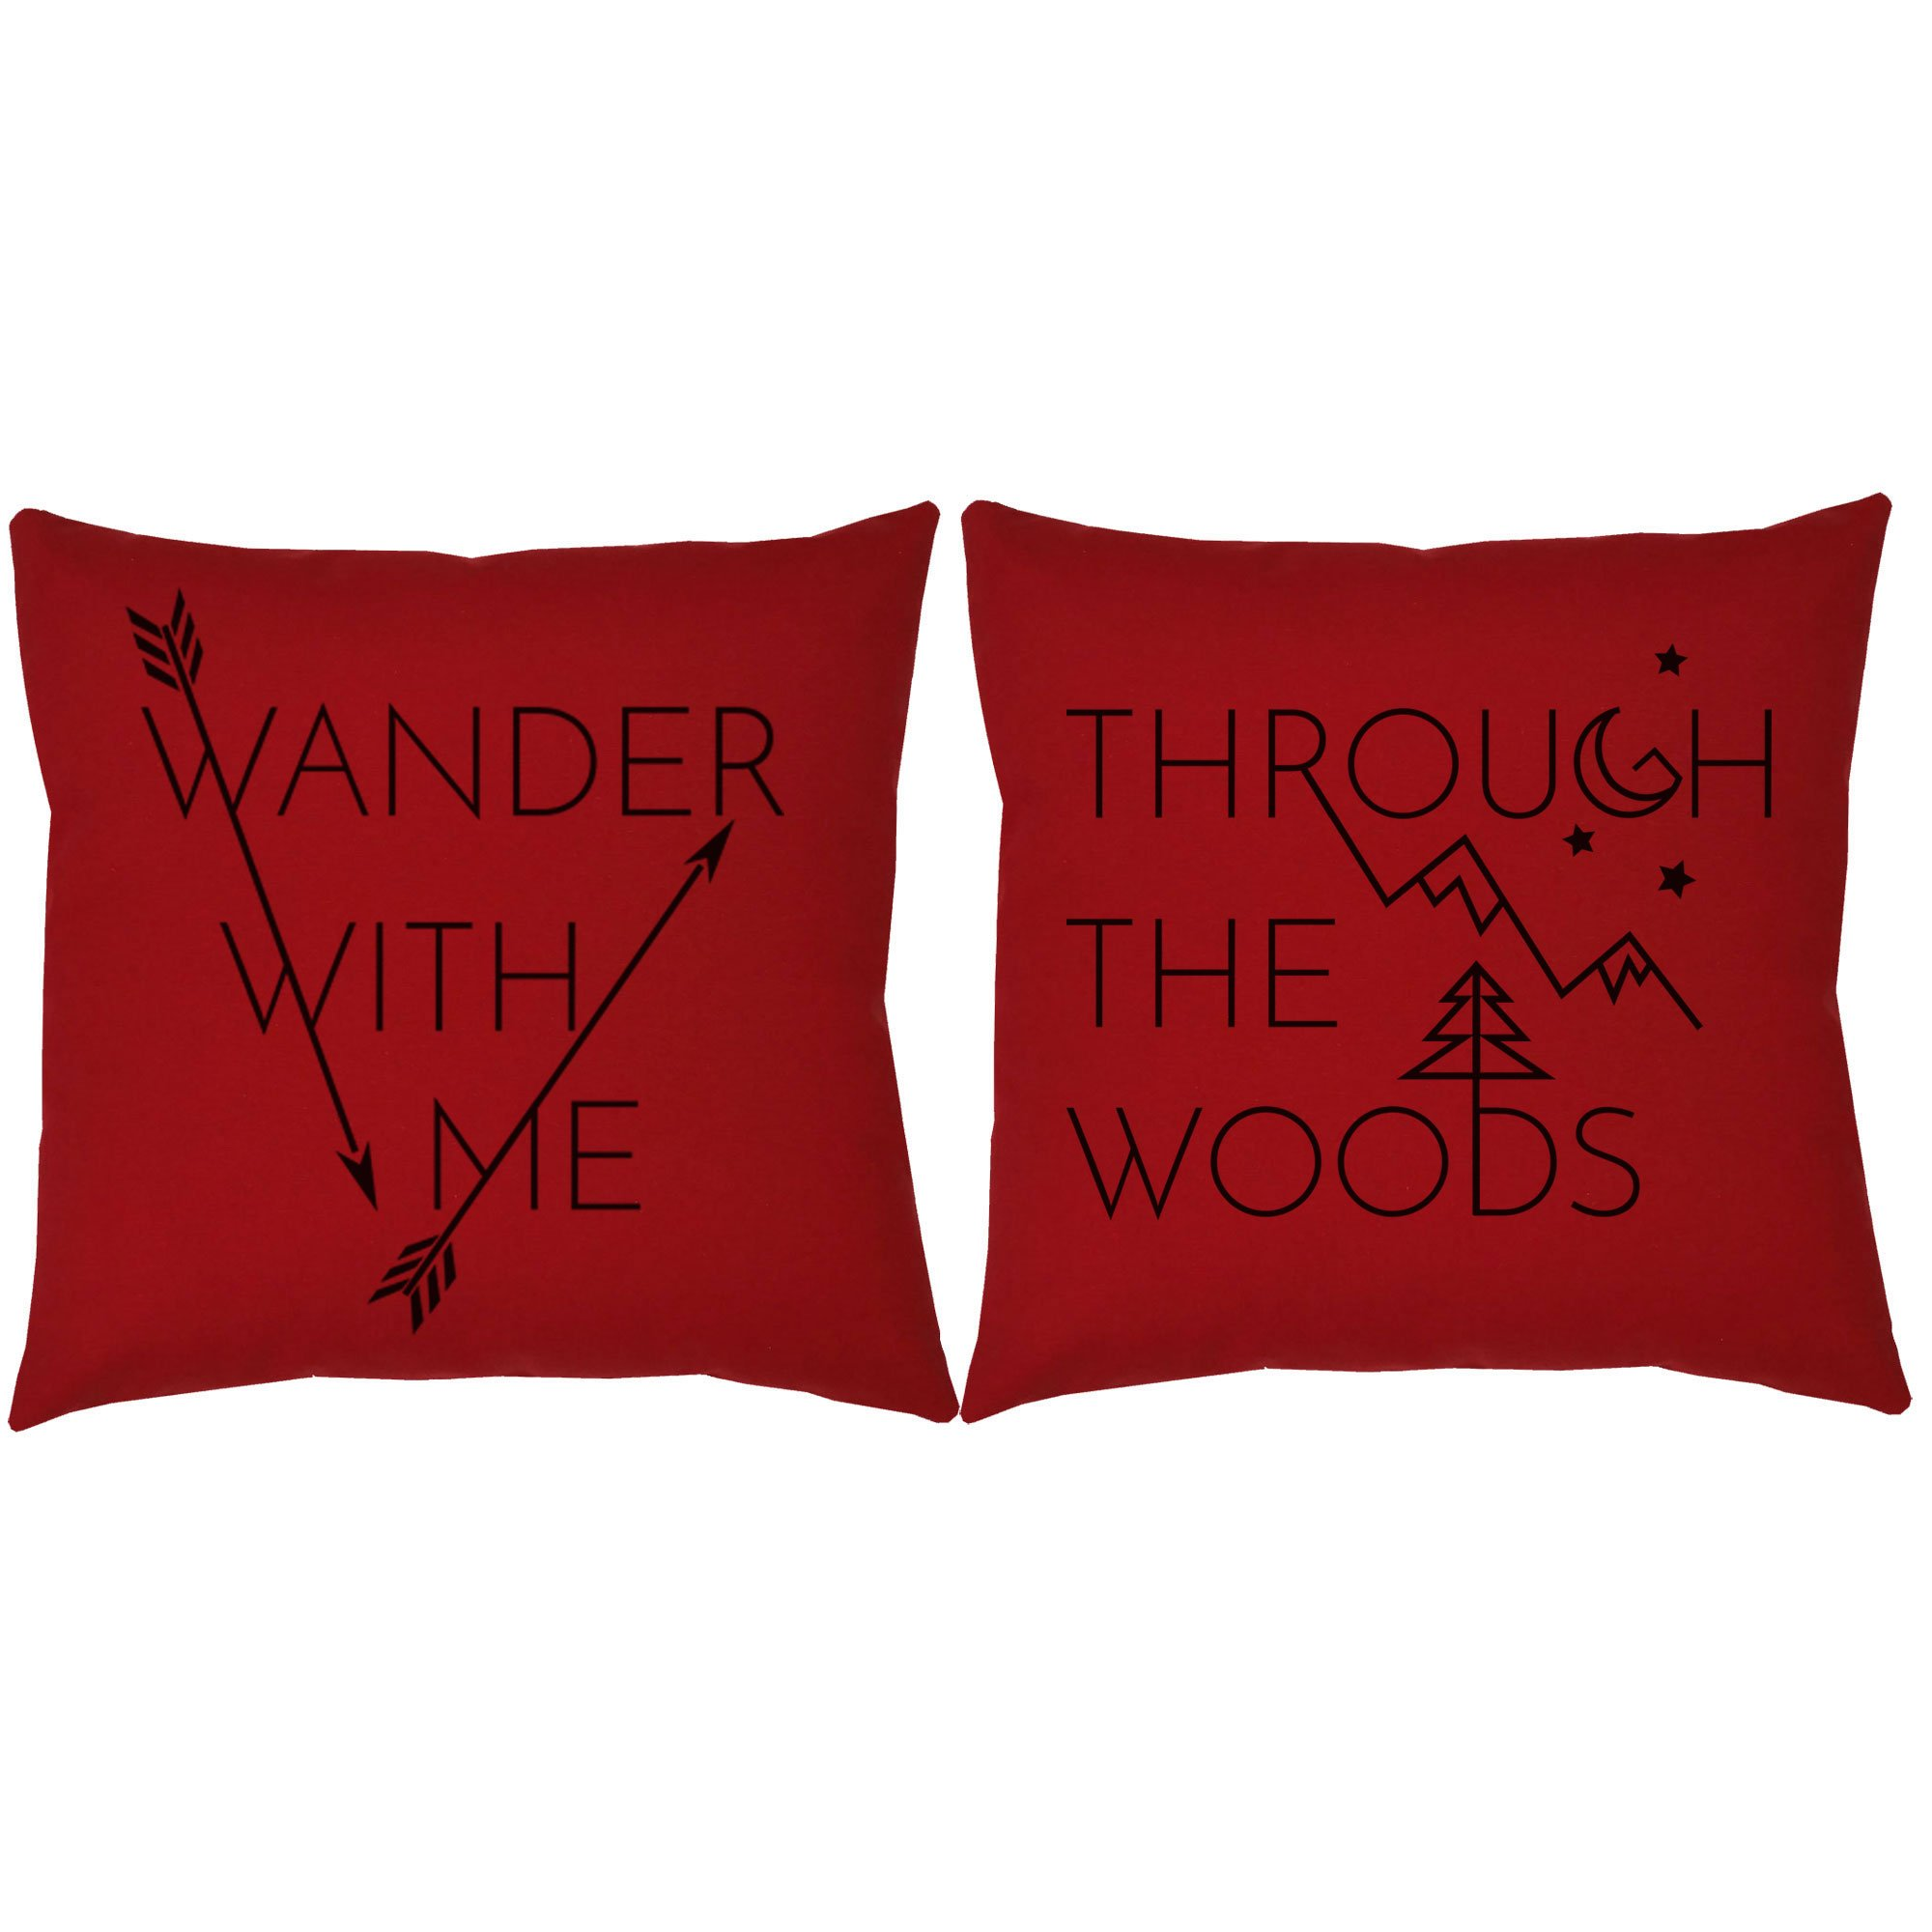 Set of 2 RoomCraft Wander With Me Through the Woods Throw Pillows 20x20 Square Red Indoor-Outdoor Cushions by RoomCraft (Image #1)